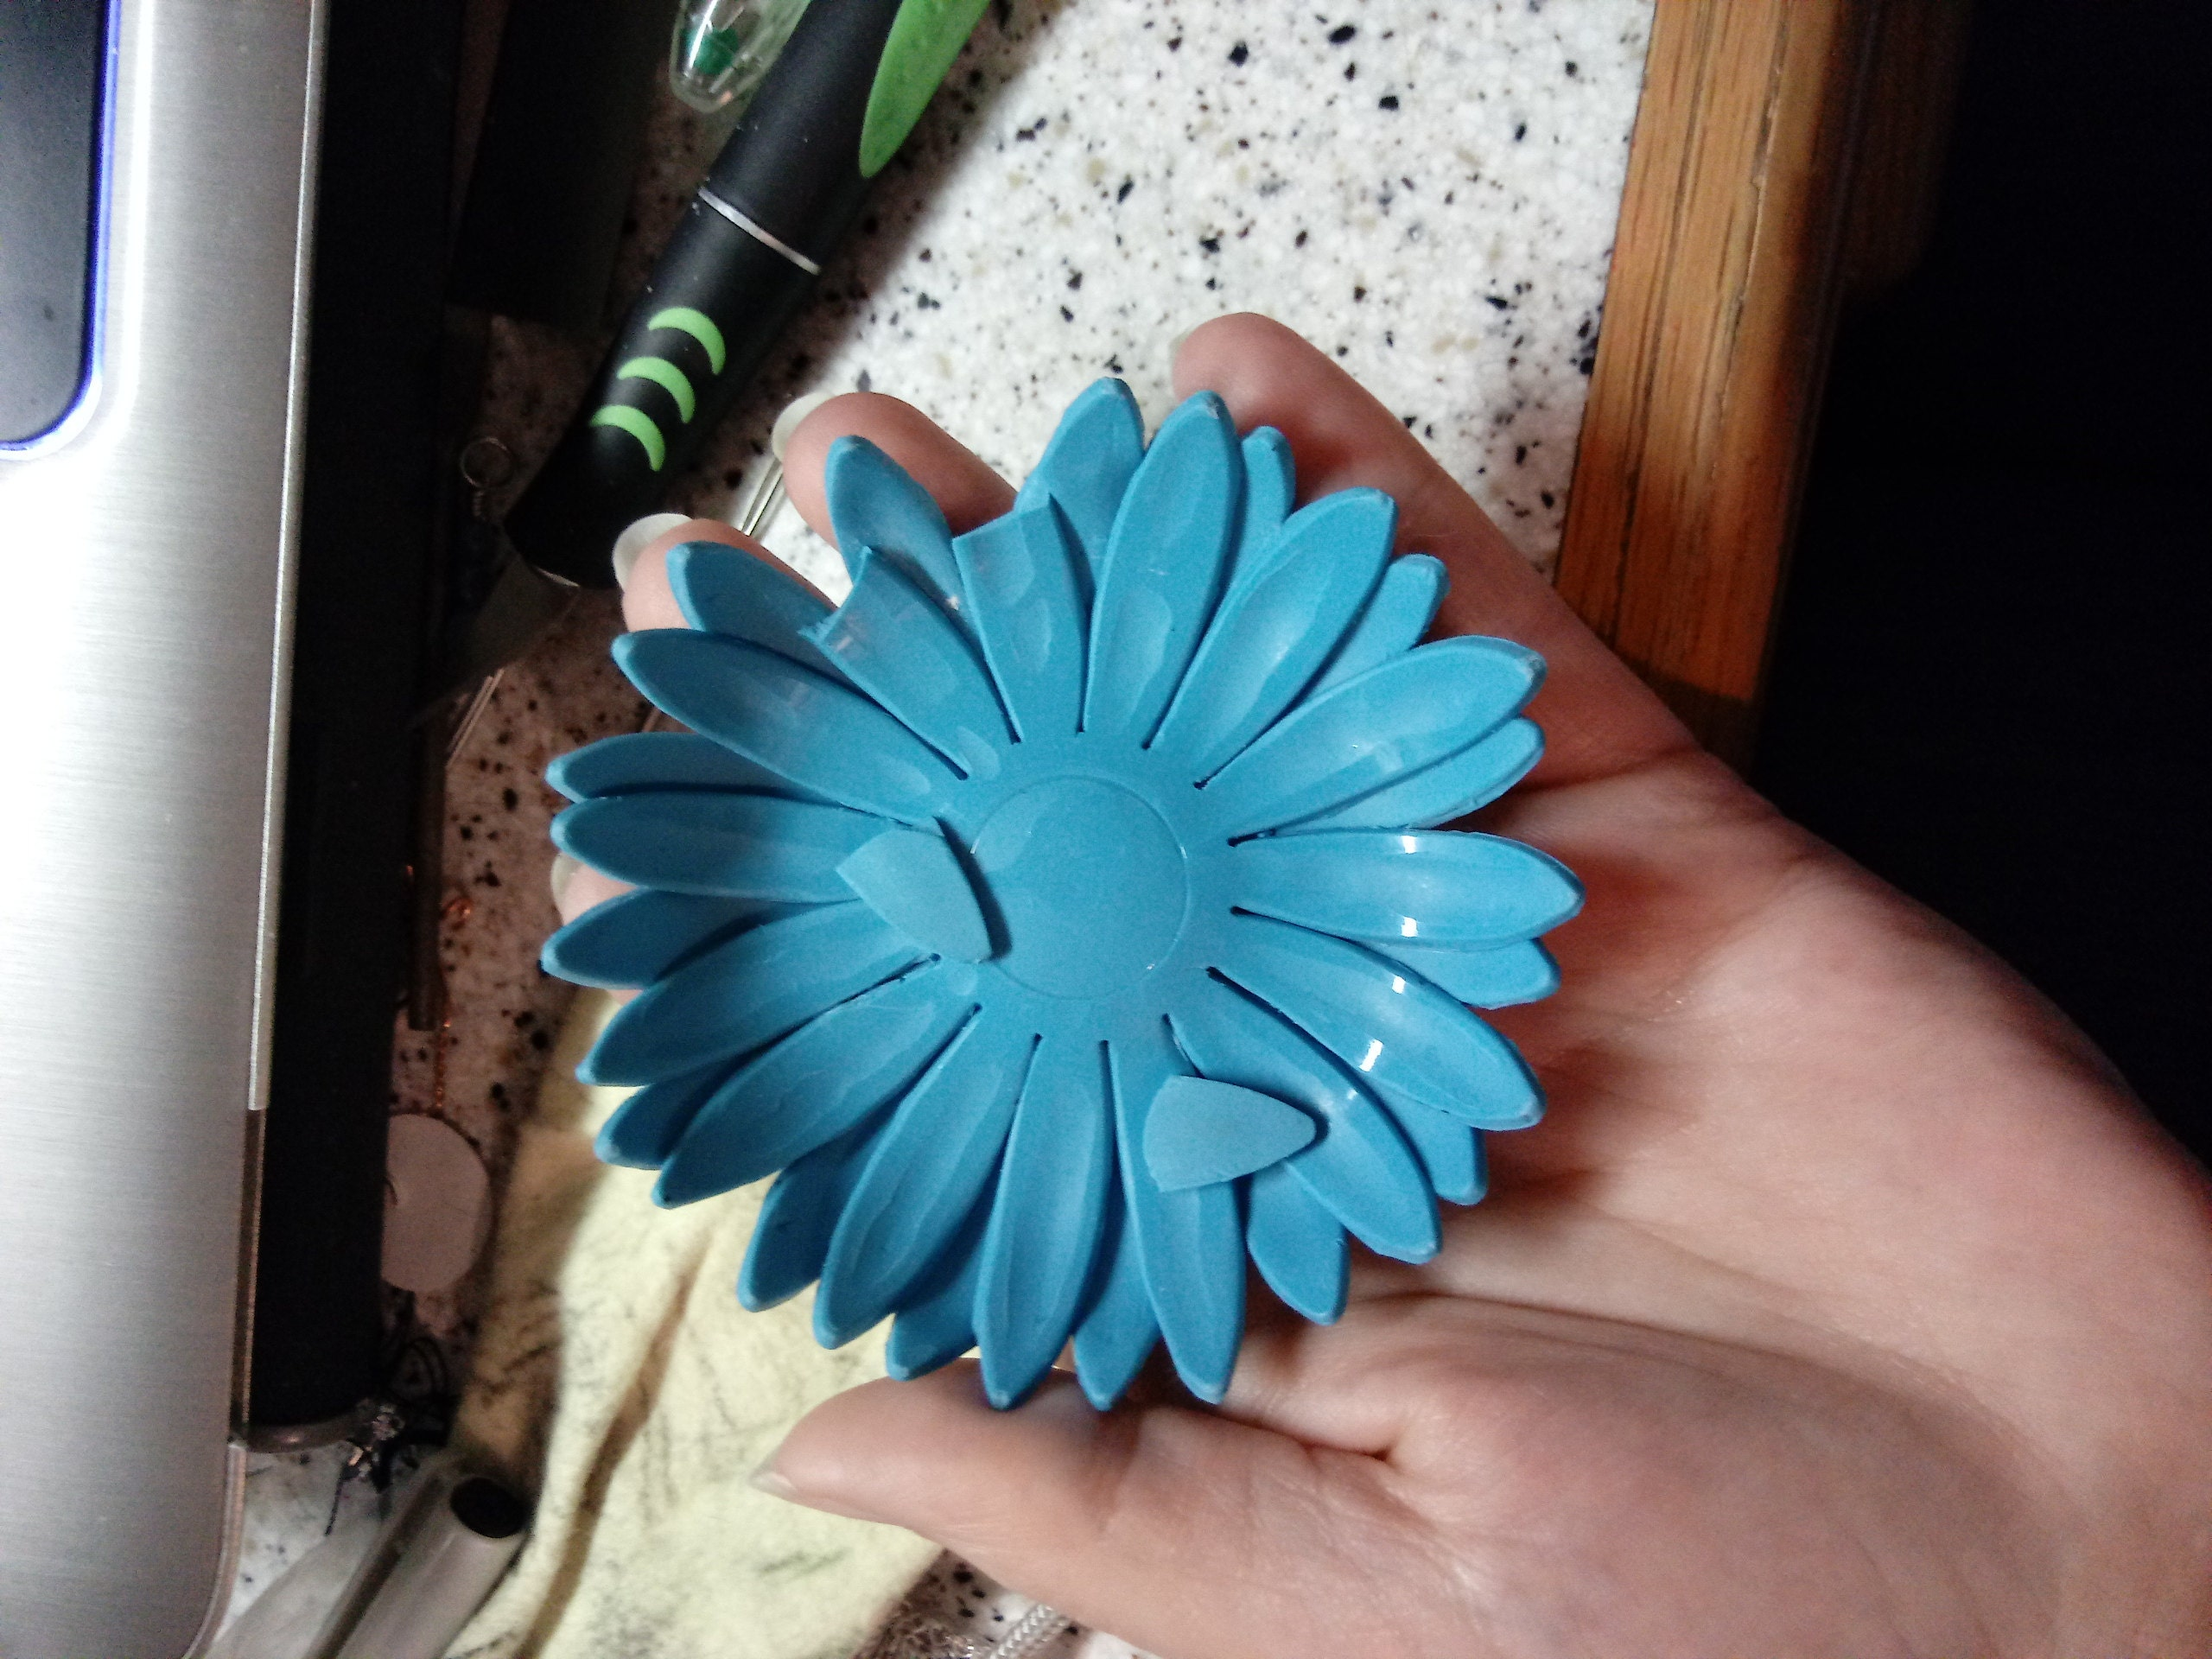 Blue daisy dish after testing.